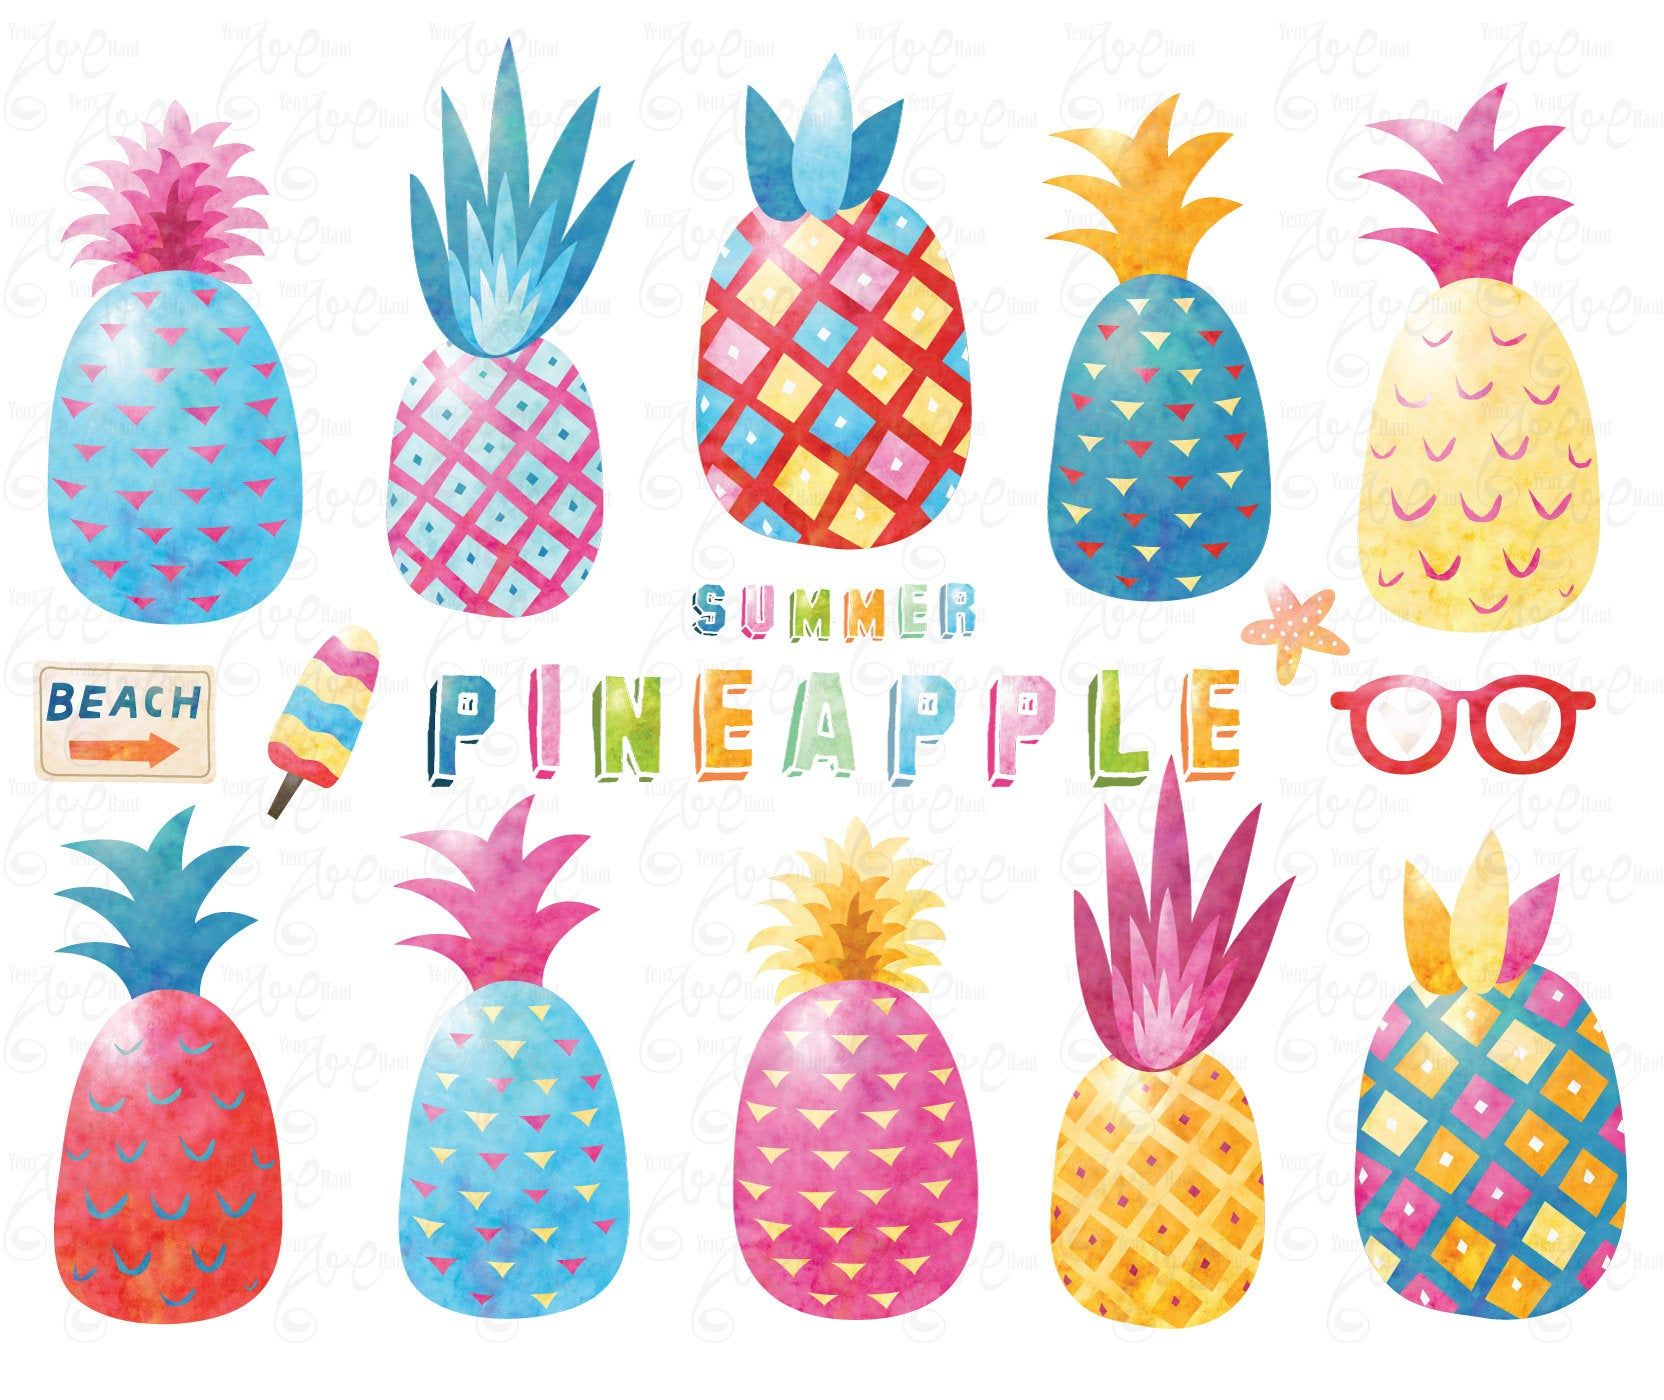 Watercolor Pineapple Watercolor Pineapple Clipart Cute